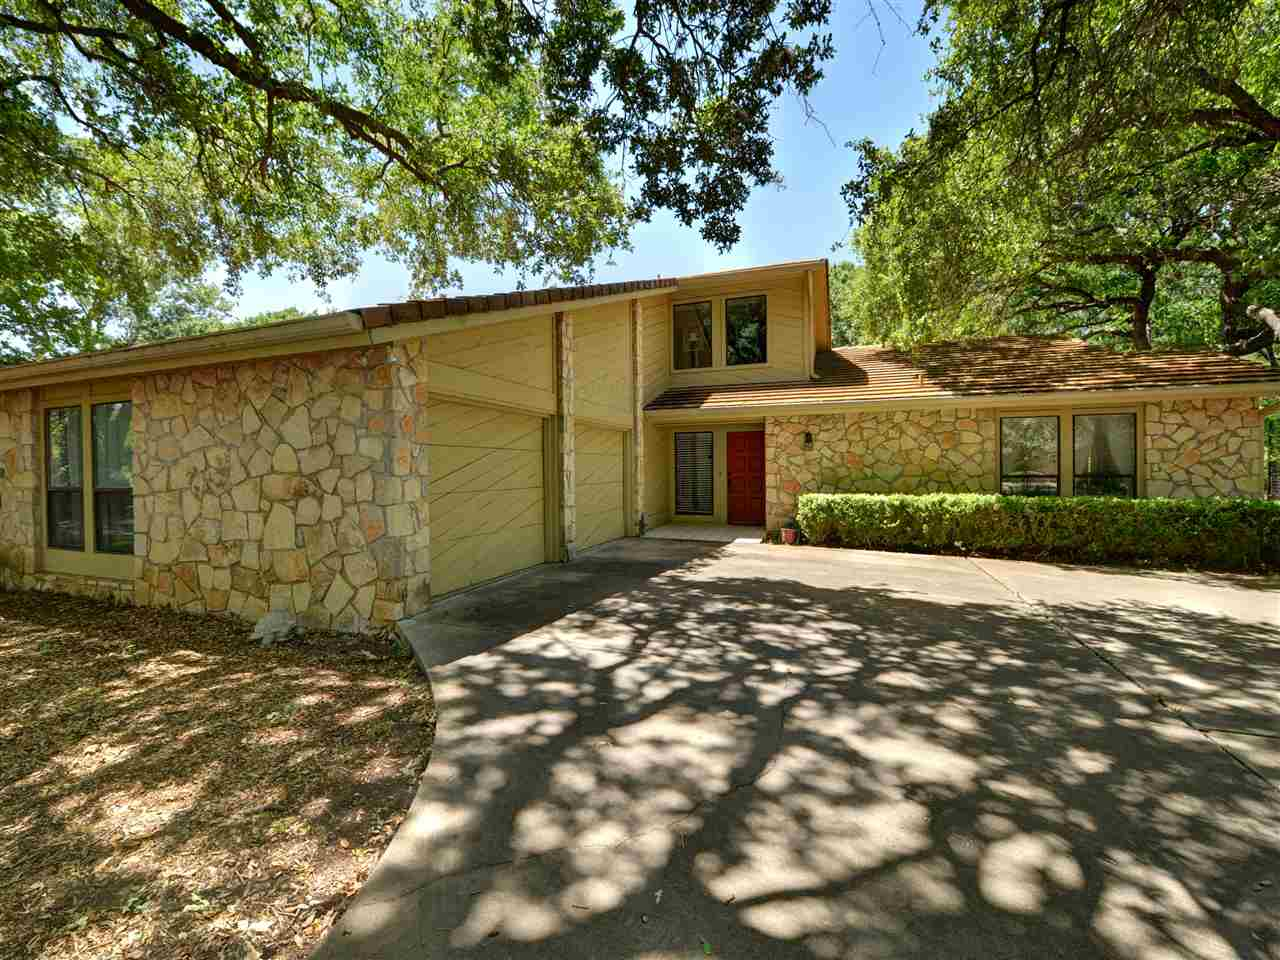 204 Blue Ground Horseshoe Bay Real Estate Home Listings - RE/MAX Horseshoe Bay Resort Sales, Co. Lake LBJ Real Estate